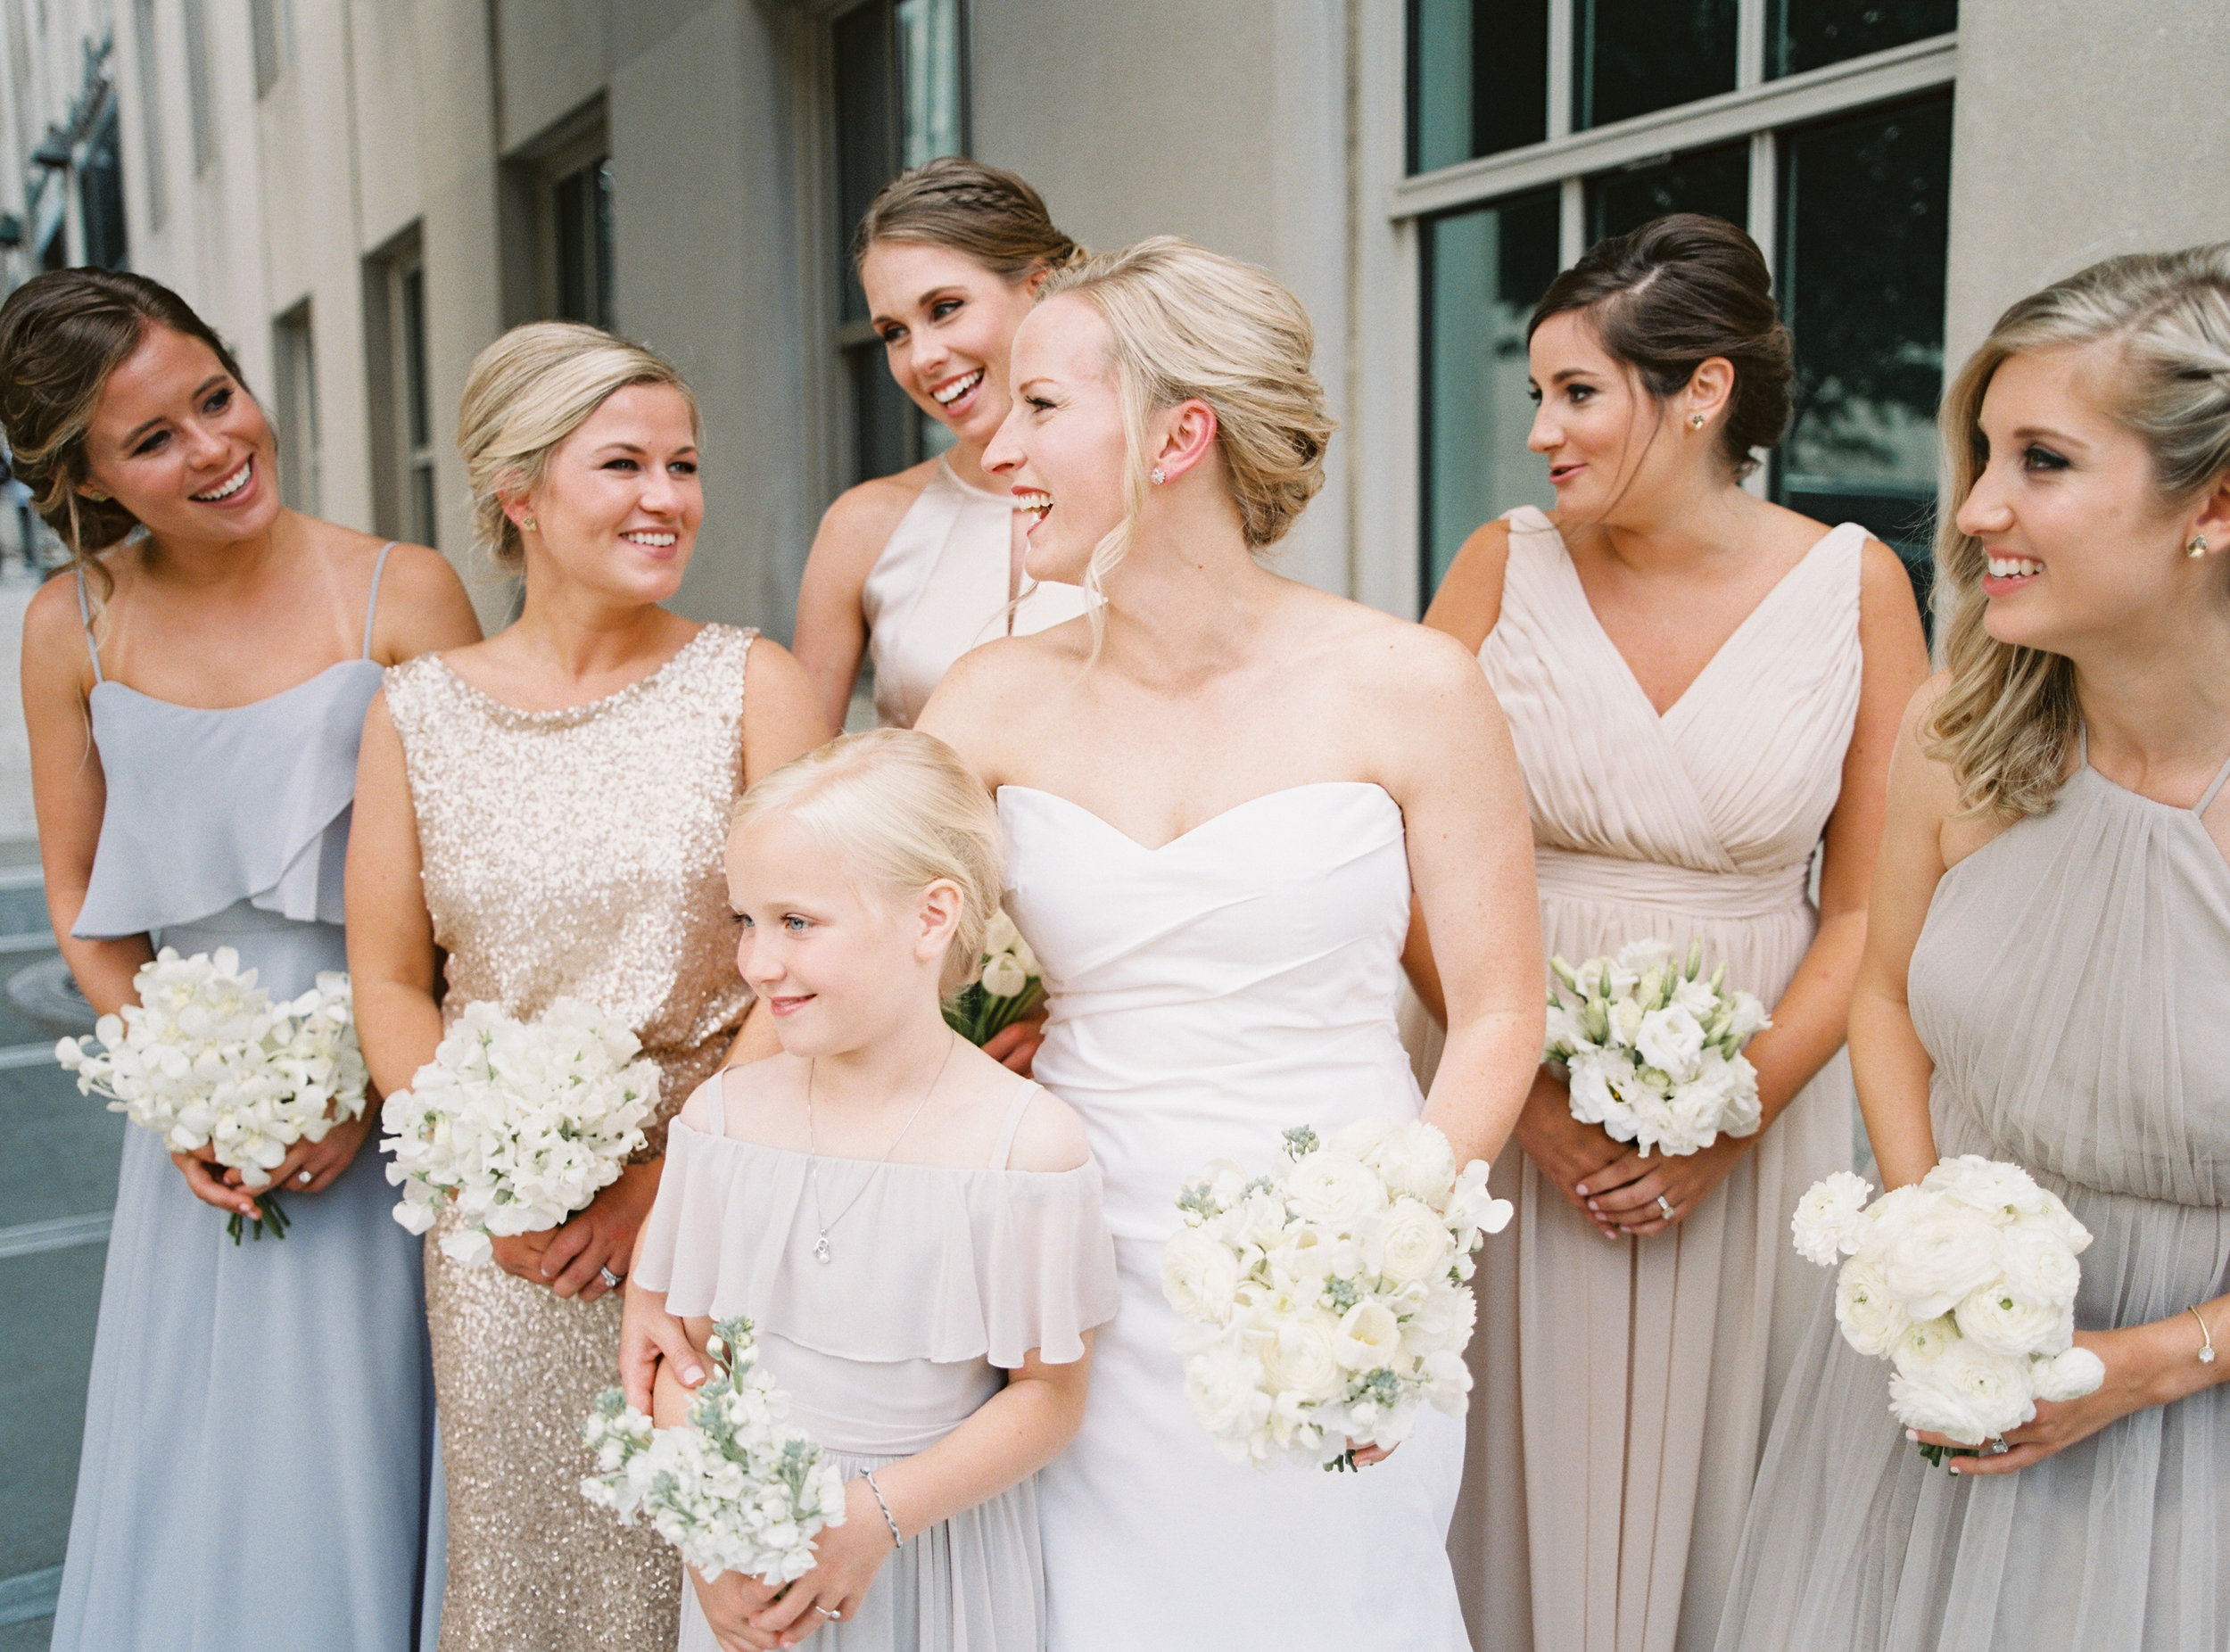 Kaitlin and her bridal party were such a cheerful (and beautiful!) bunch |  Heather Beerman Photography